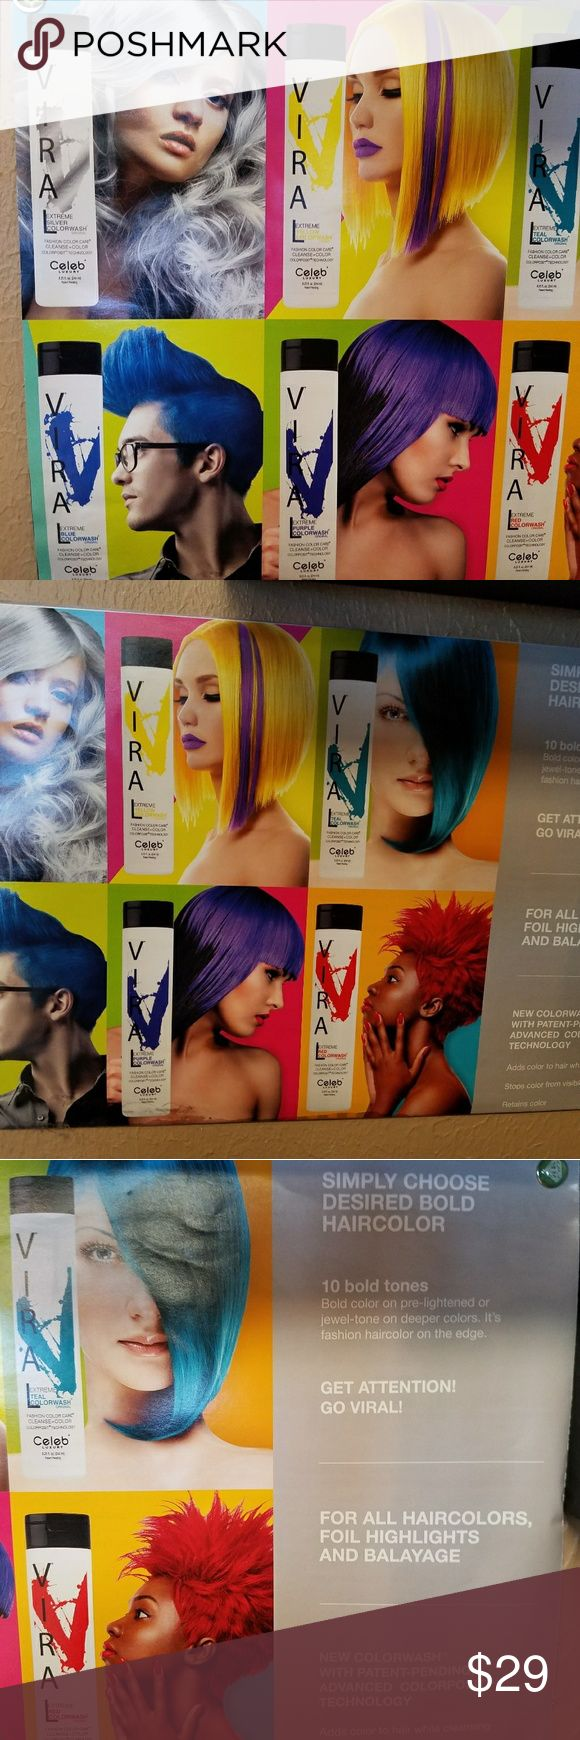 New Celeb Luxury Viral Hair Color Shampoo New color shampoos to either keep your color fresh or to add some temporary color to your blonde or white hair. Celeb Luxury Viral Other